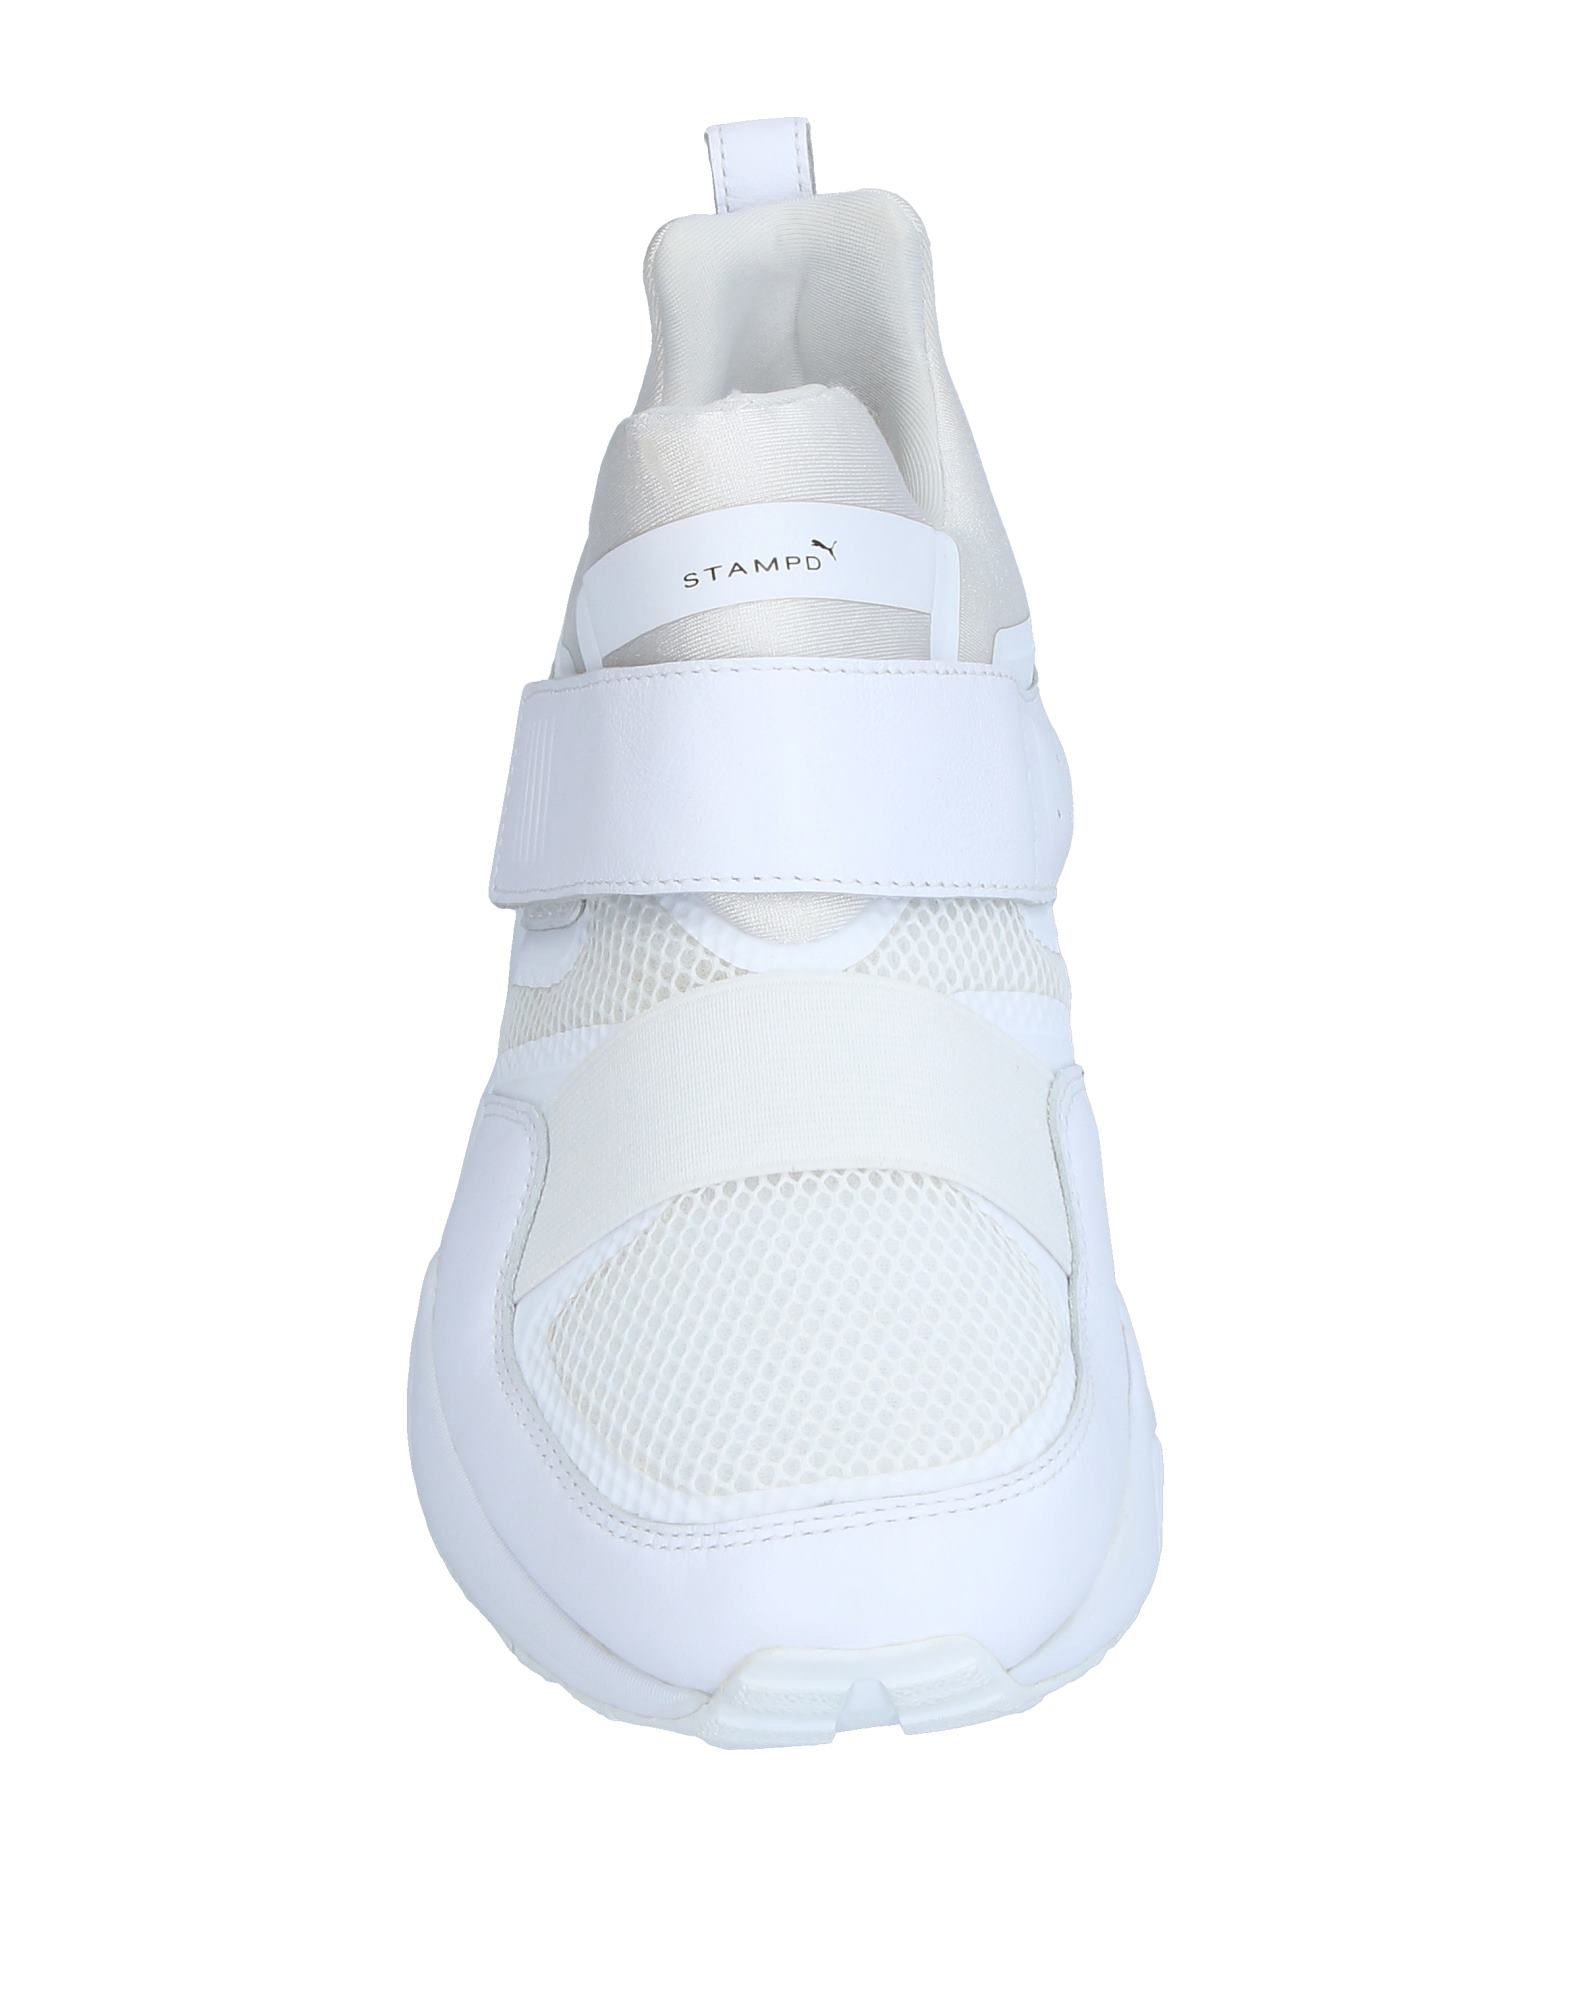 Sneakers Stampd X Puma Homme - Sneakers Stampd X Puma sur